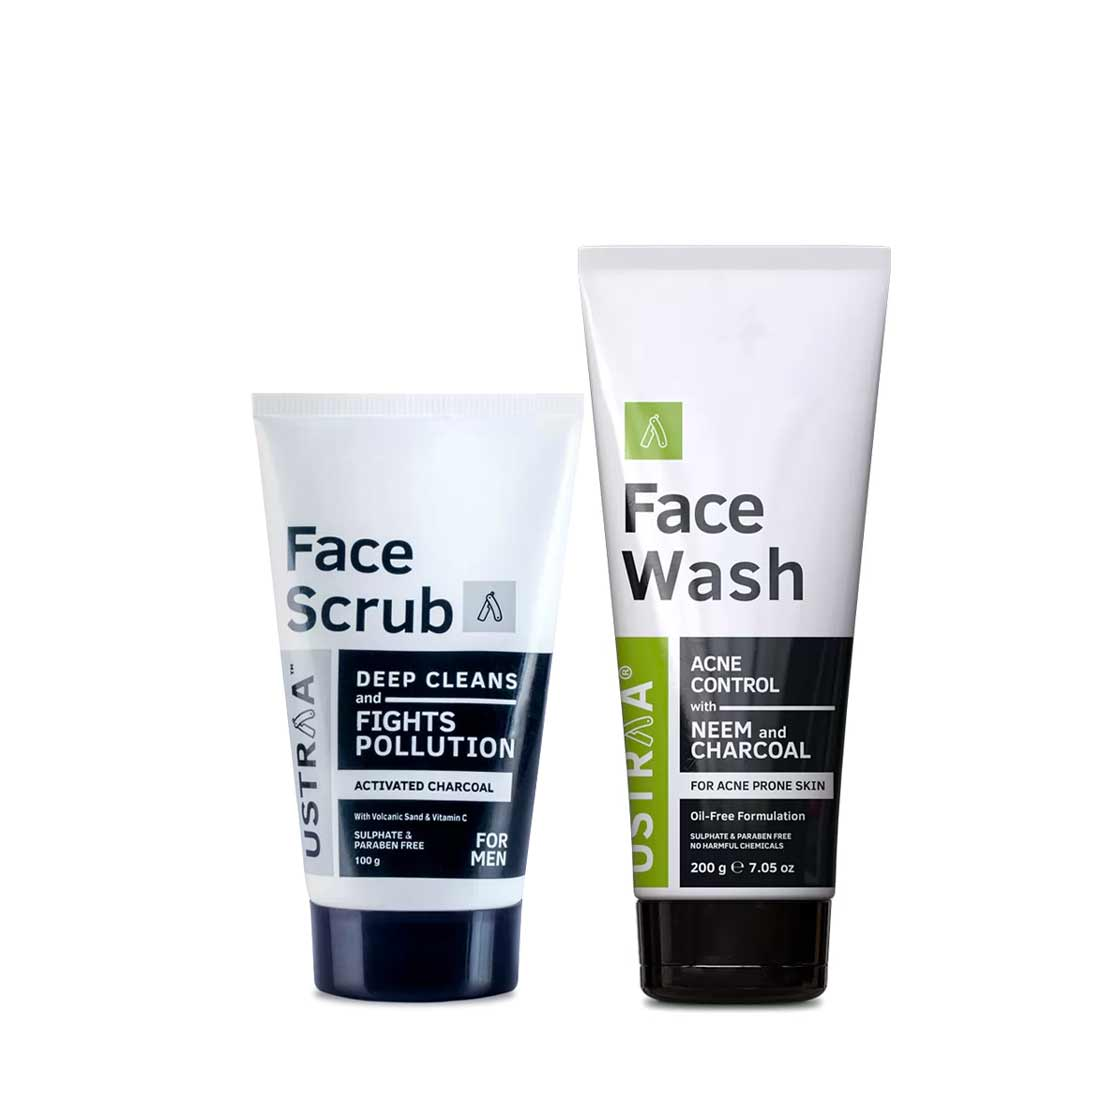 Face Wash Acne Control and Face Scrub Activated Charcoal